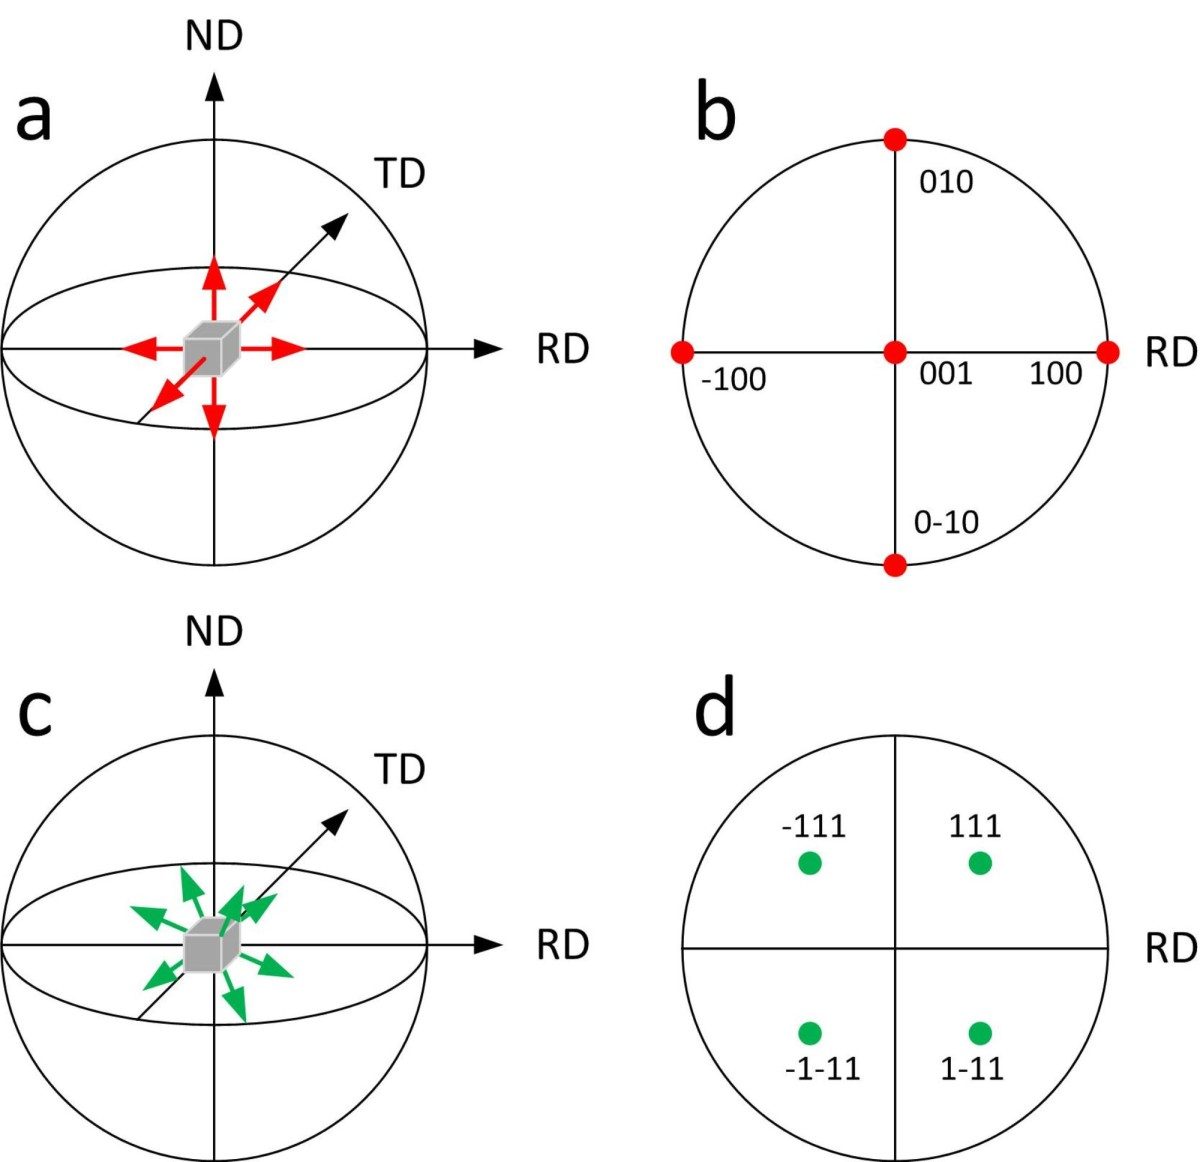 http://static-content.springer.com/image/art%3A10.1186%2F1556-276X-8-85/MediaObjects/11671_2012_Article_1304_Fig4_HTML.jpg